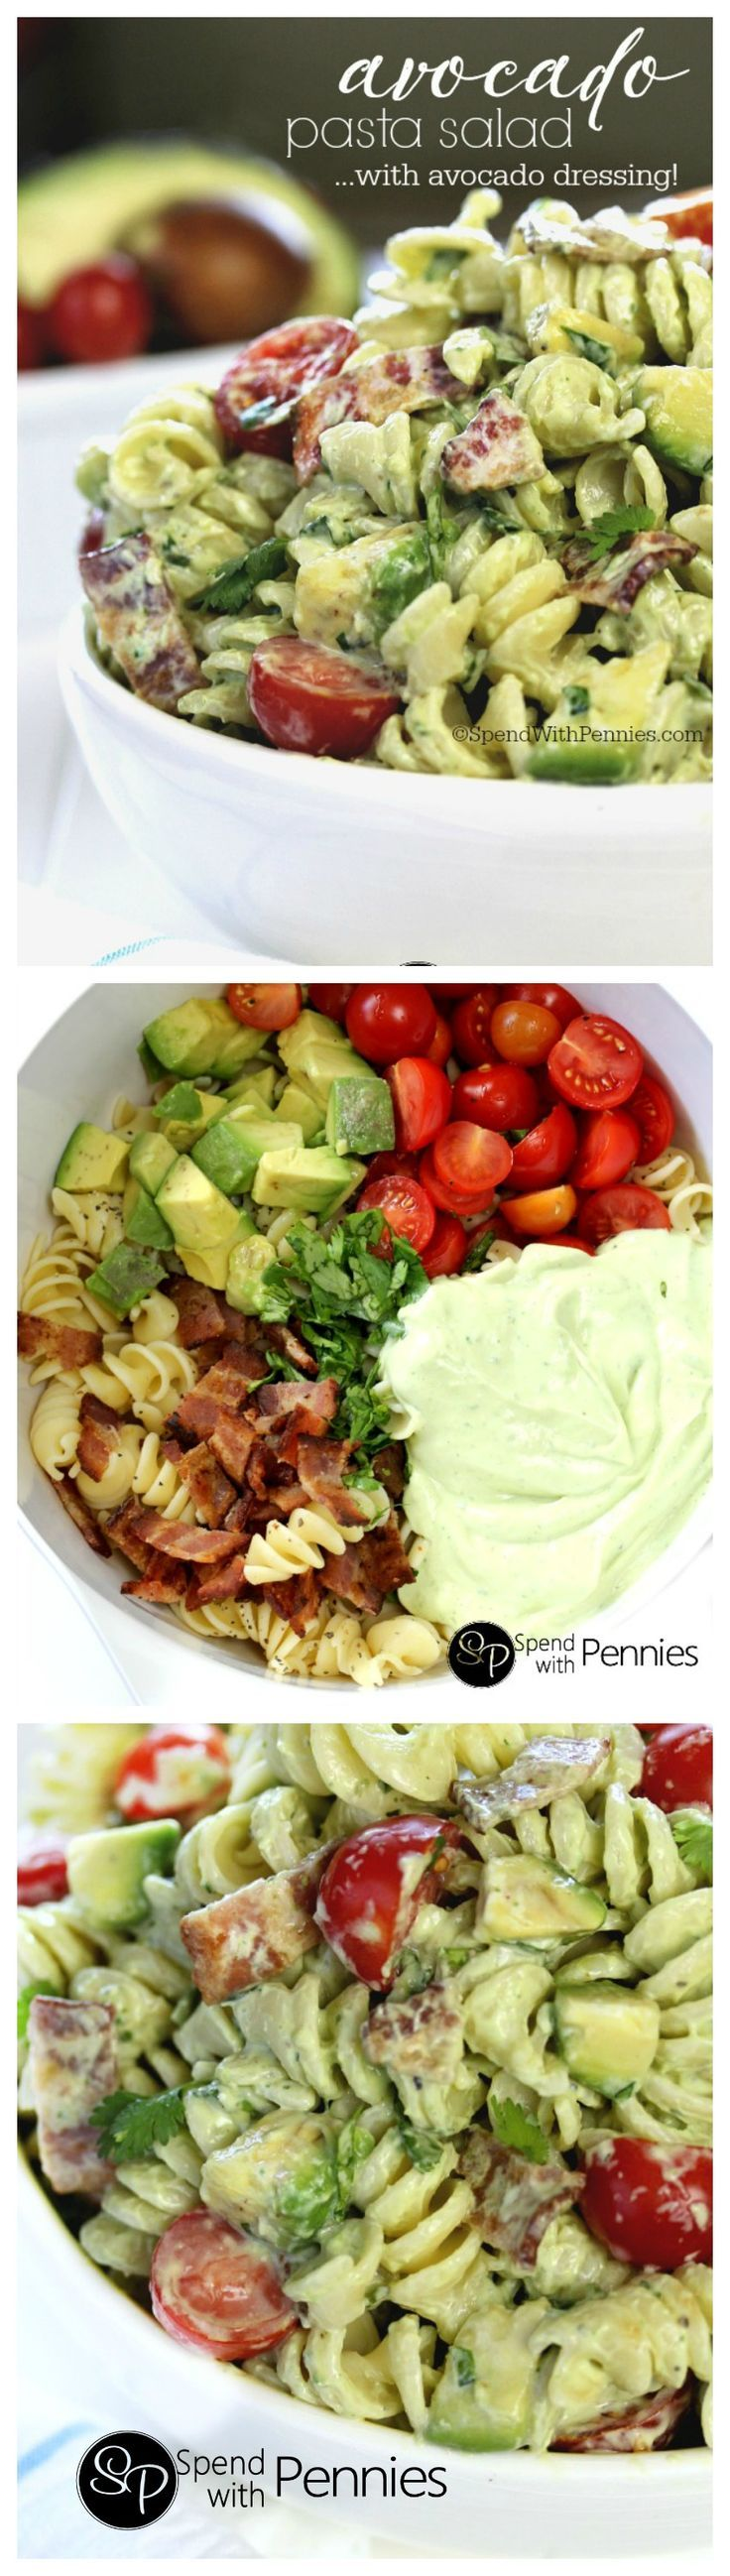 Cold pasta salads are the perfect & satisfying quick dinner or lunch! This delicious pasta salad recipe is loaded with avocados, crispy bacon & juicy cherry tomatoes tossed in a homemade avocado dressing!: